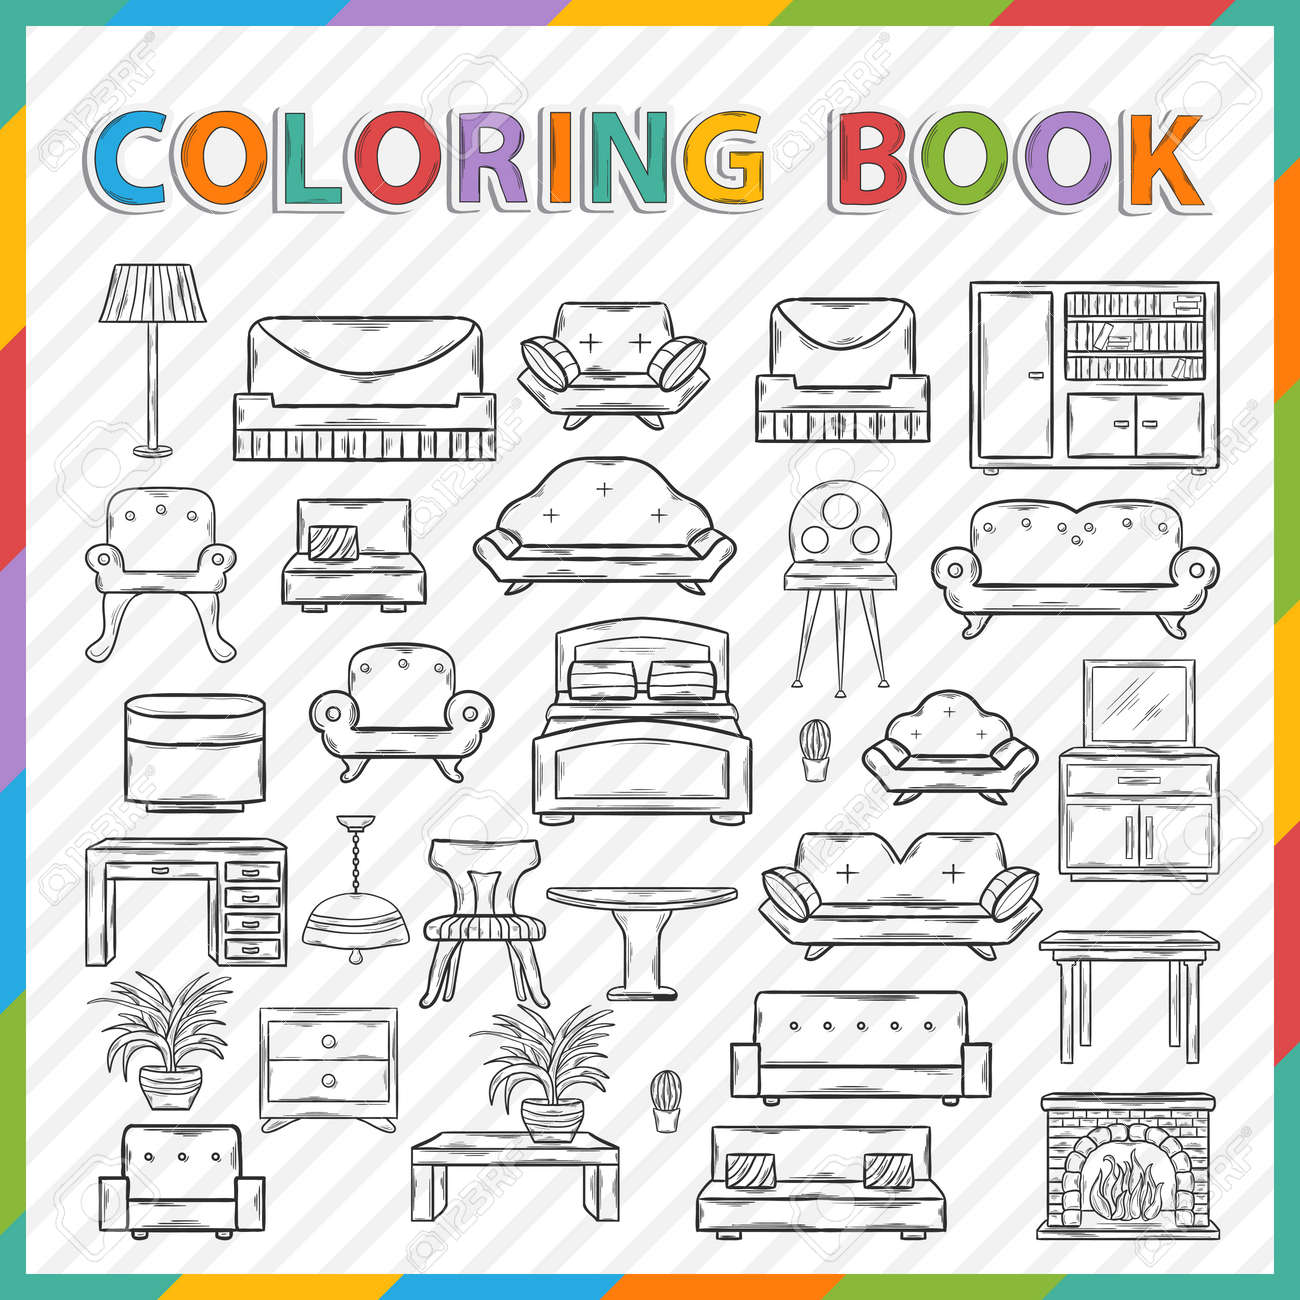 vector coloring bookhand drawn icon set with various home interior decorhome accessories - Coloring Book Paper Stock